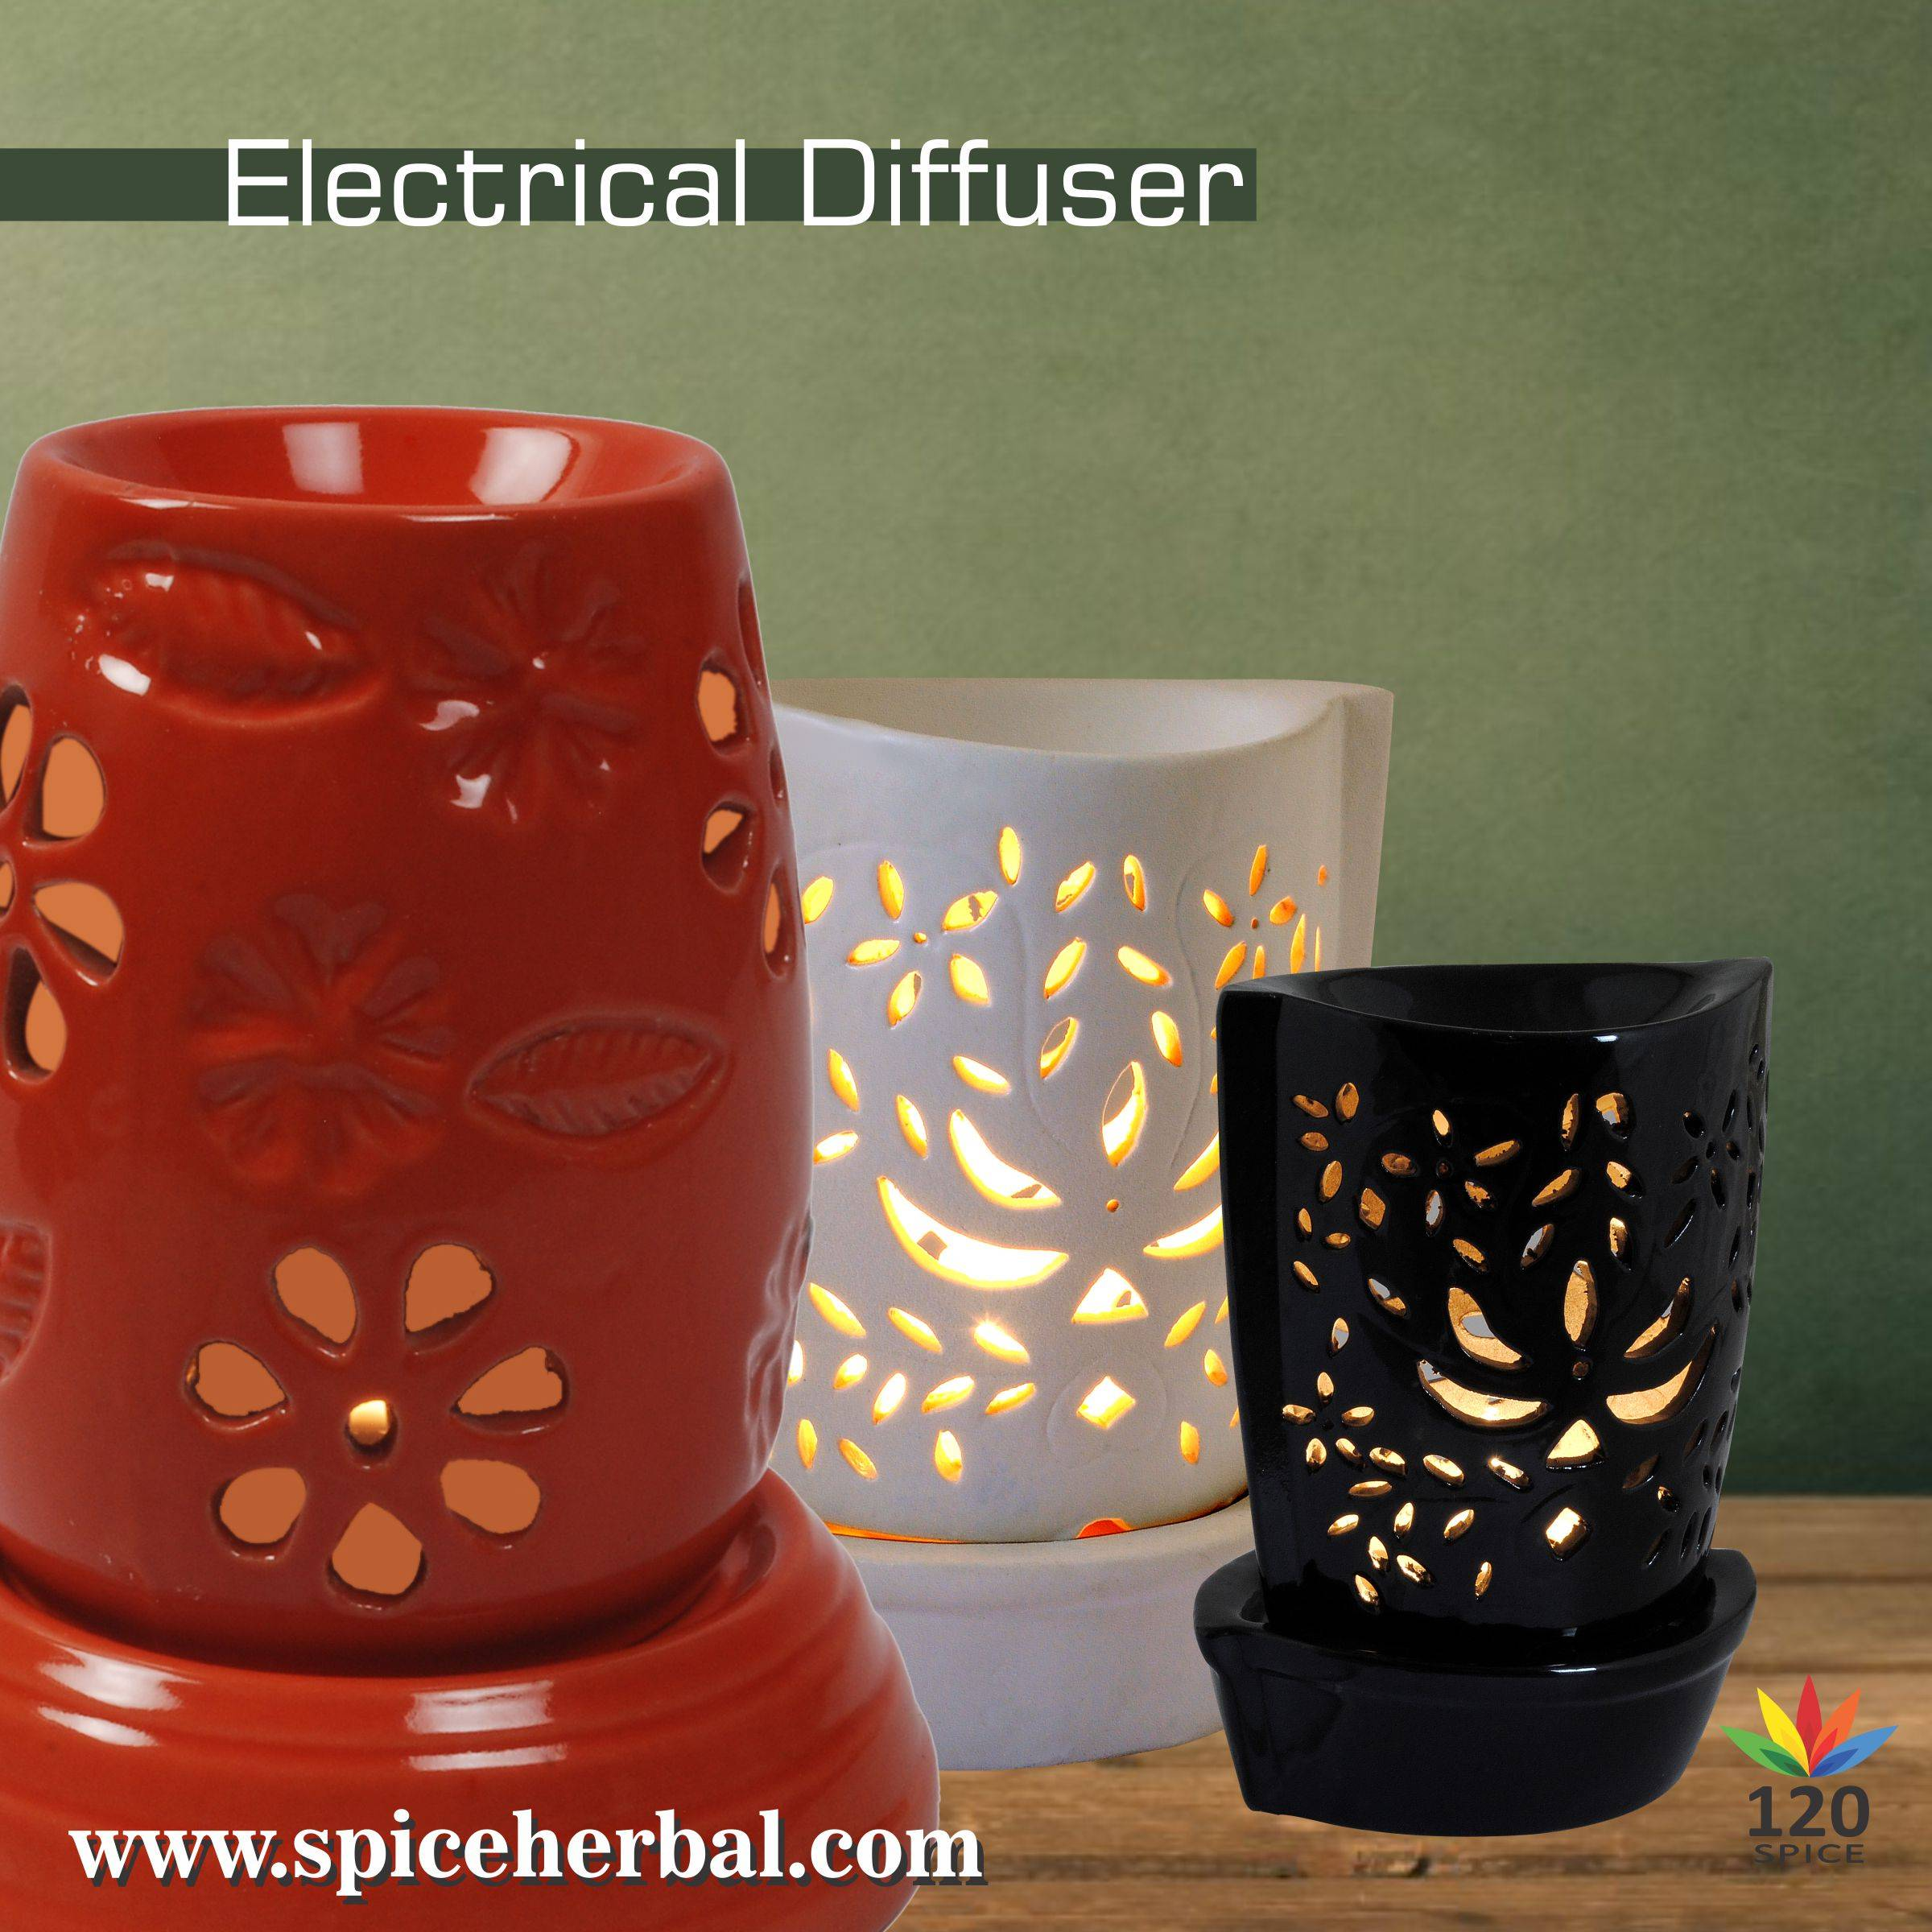 Electrical Diffuser